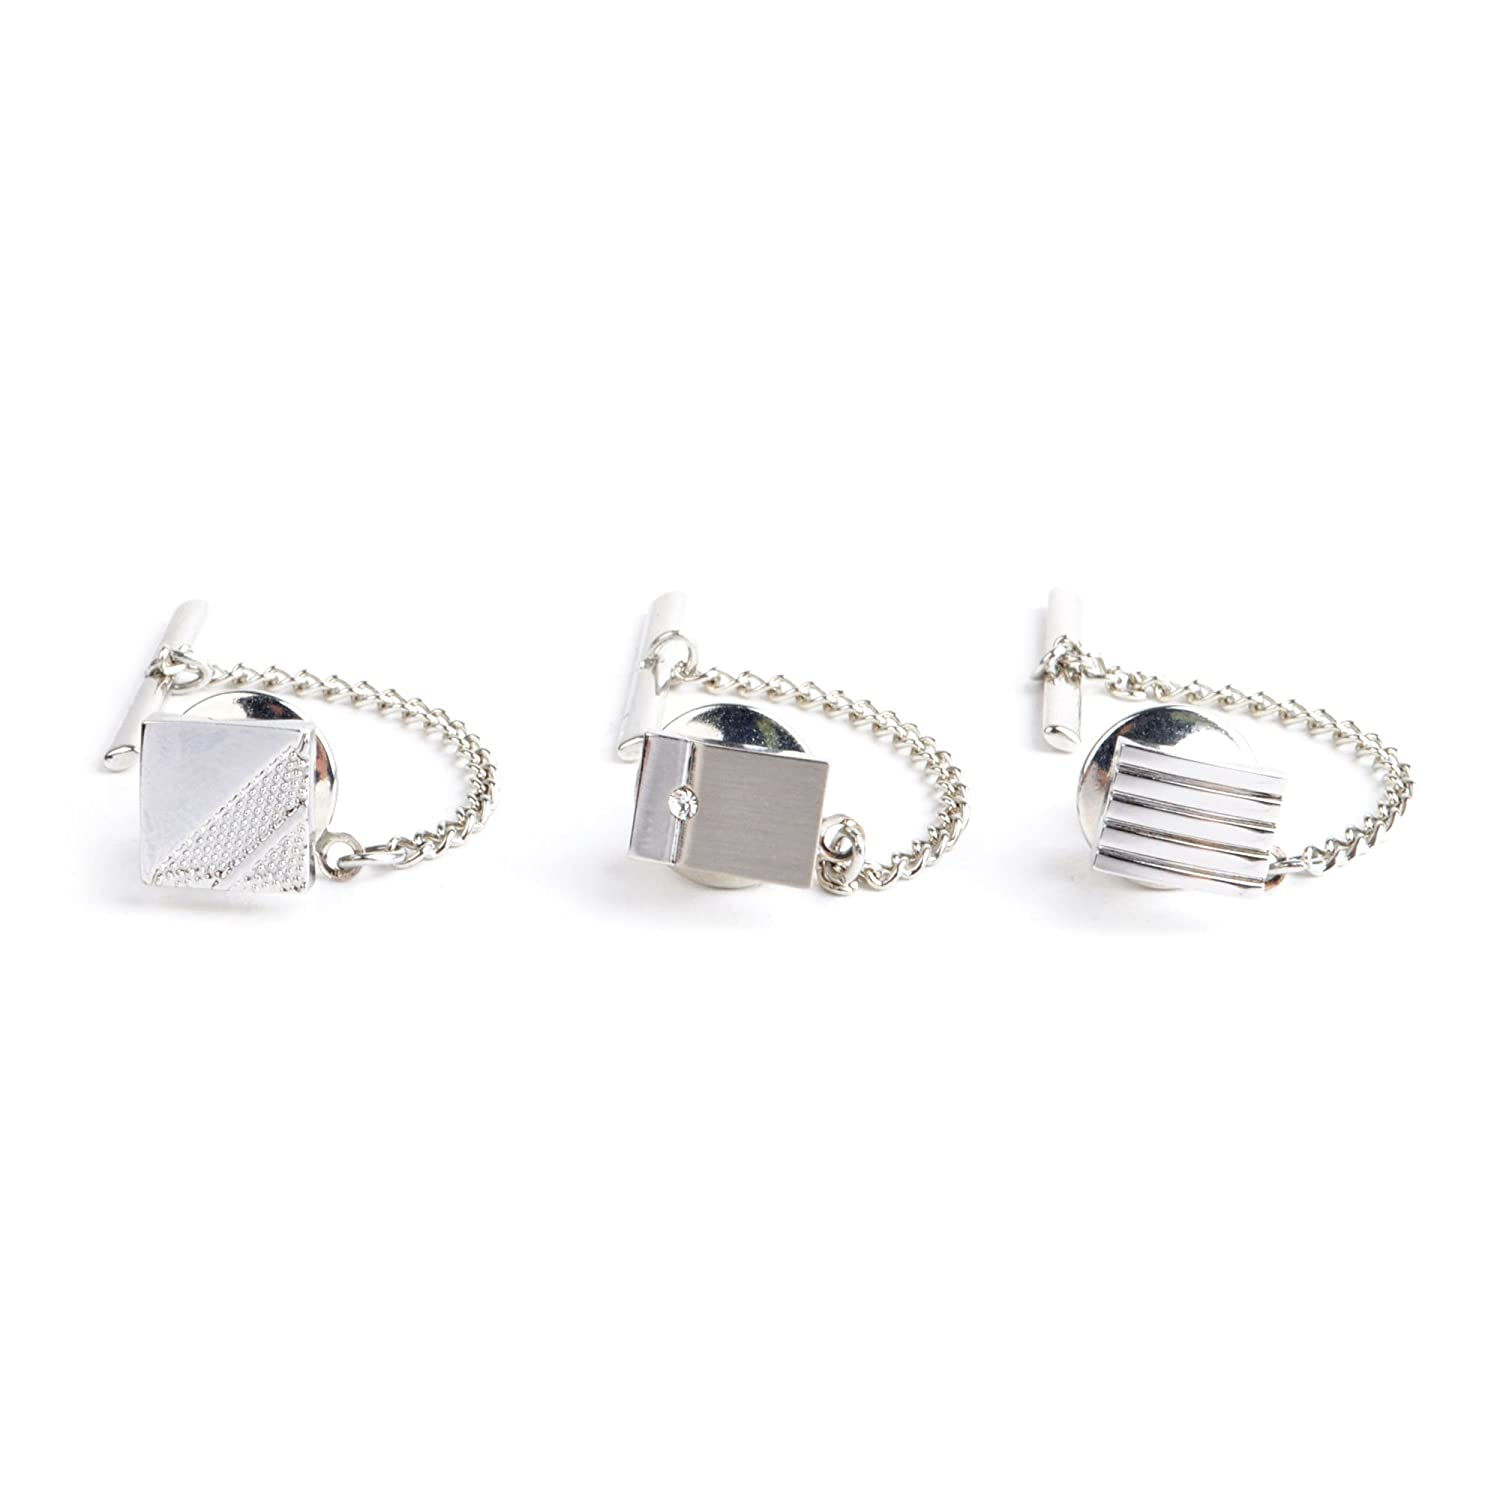 Silver Tone 3 Pieces Tie Tack Set for Men Boxed-Gifts TT1749-3pk